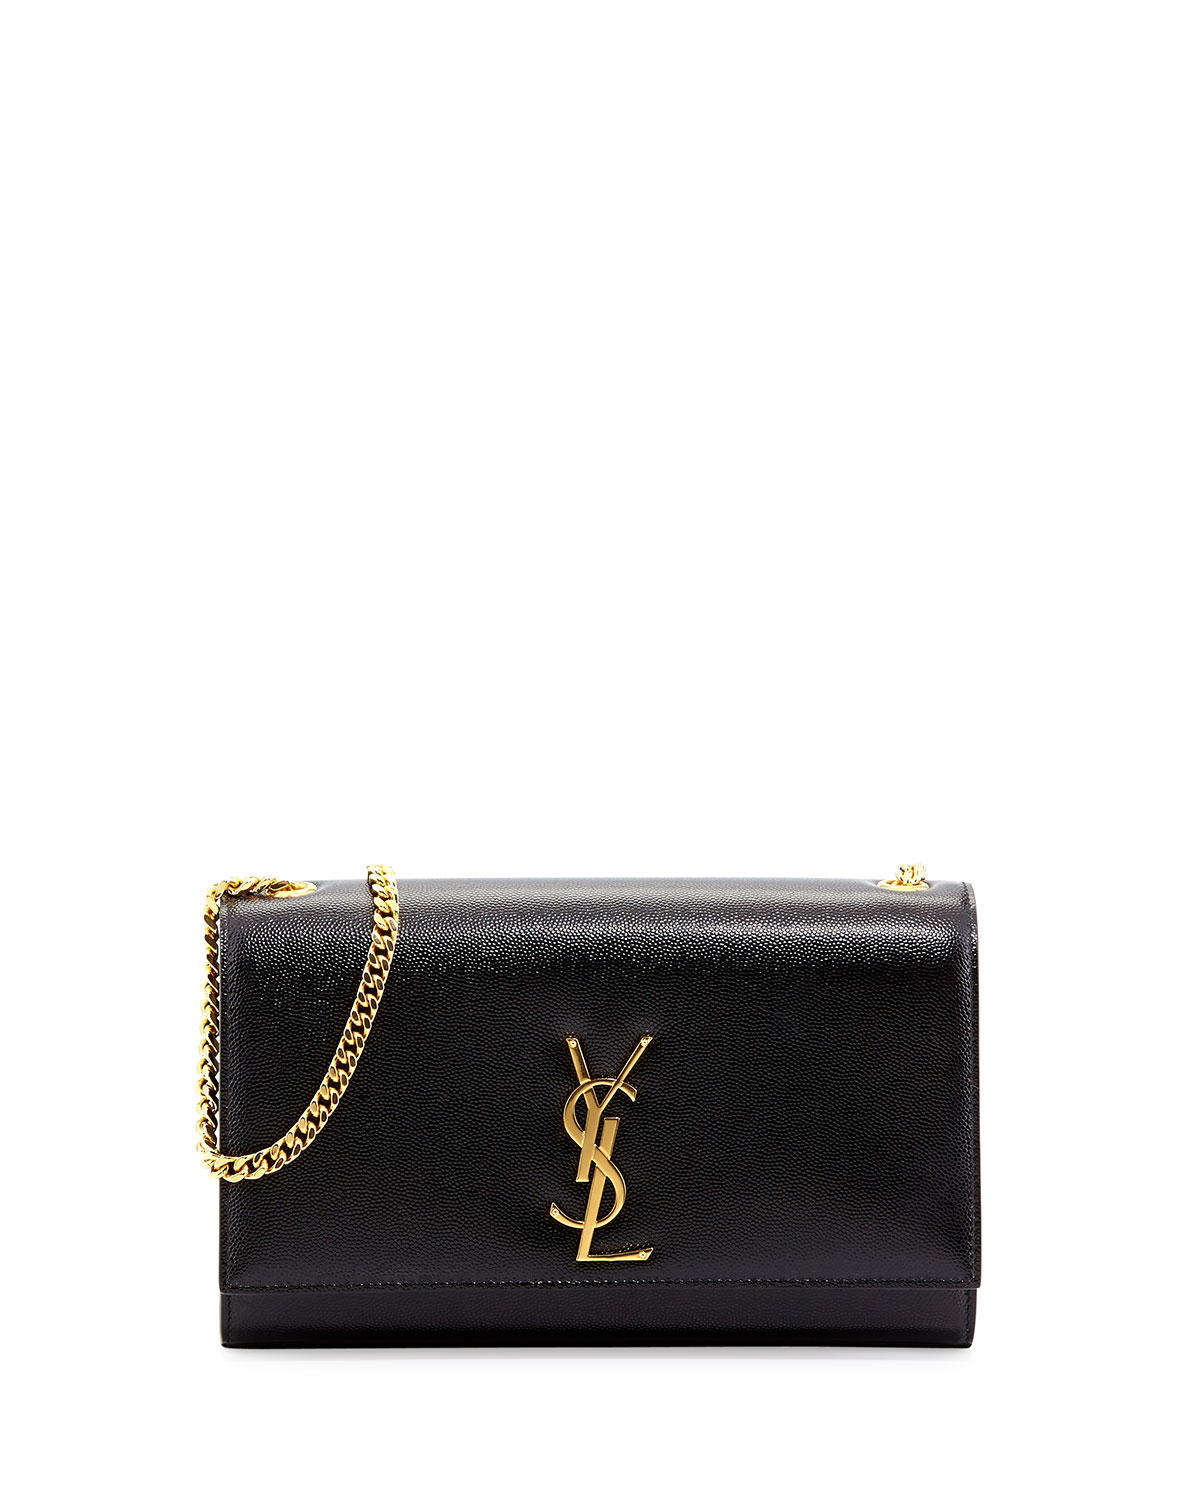 Saint Laurent Kate Monogram YSL Medium Shoulder Bag   Neiman Marcus 301382d551